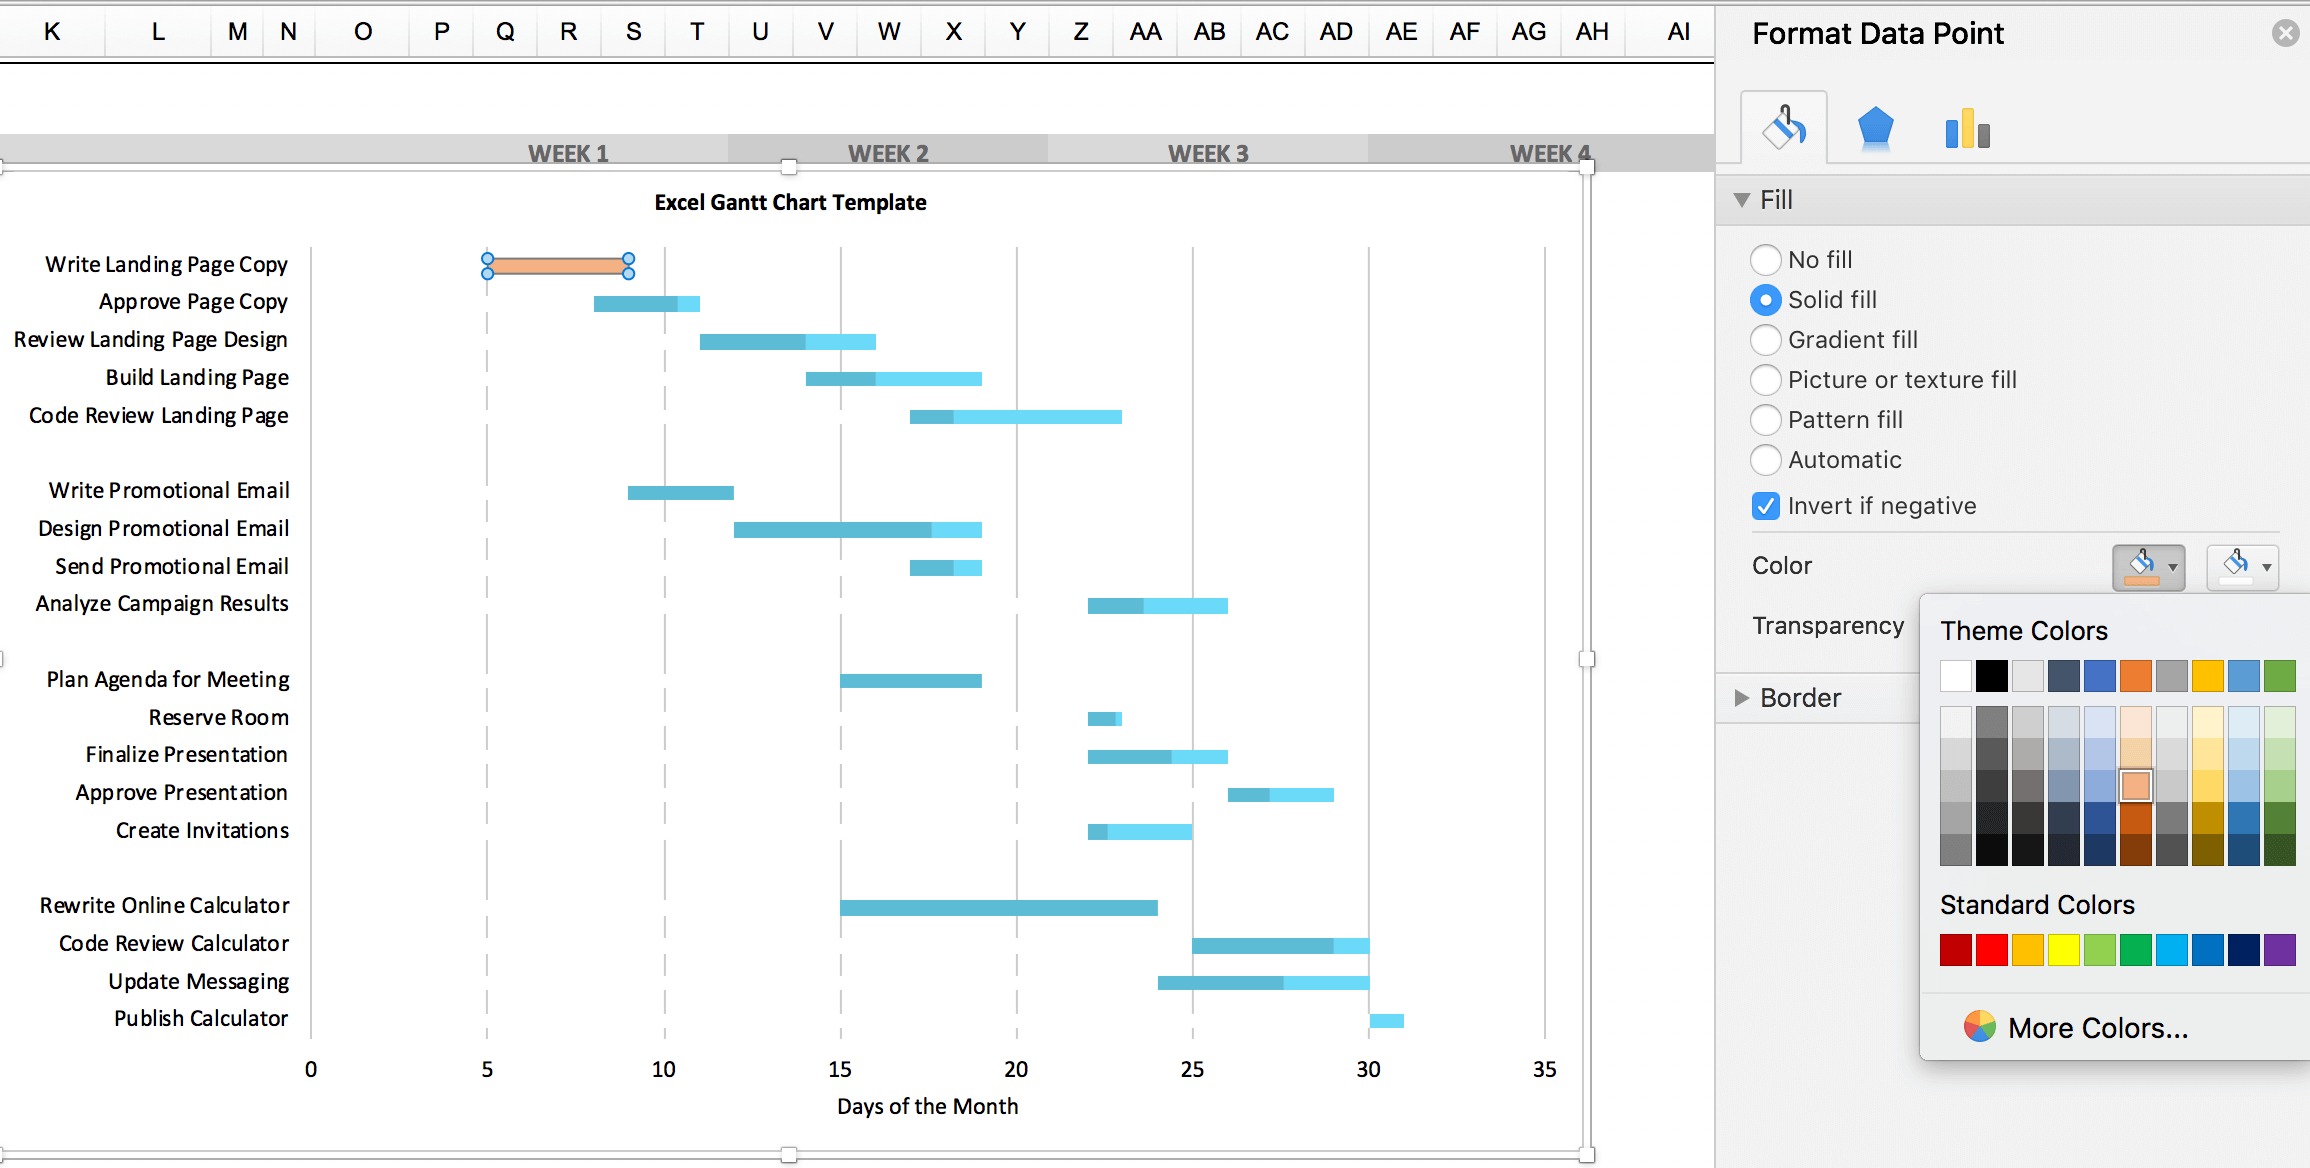 Free Gantt Chart Excel Template: Download Now | Teamgantt Within Gantt Chart Template Excel 2010